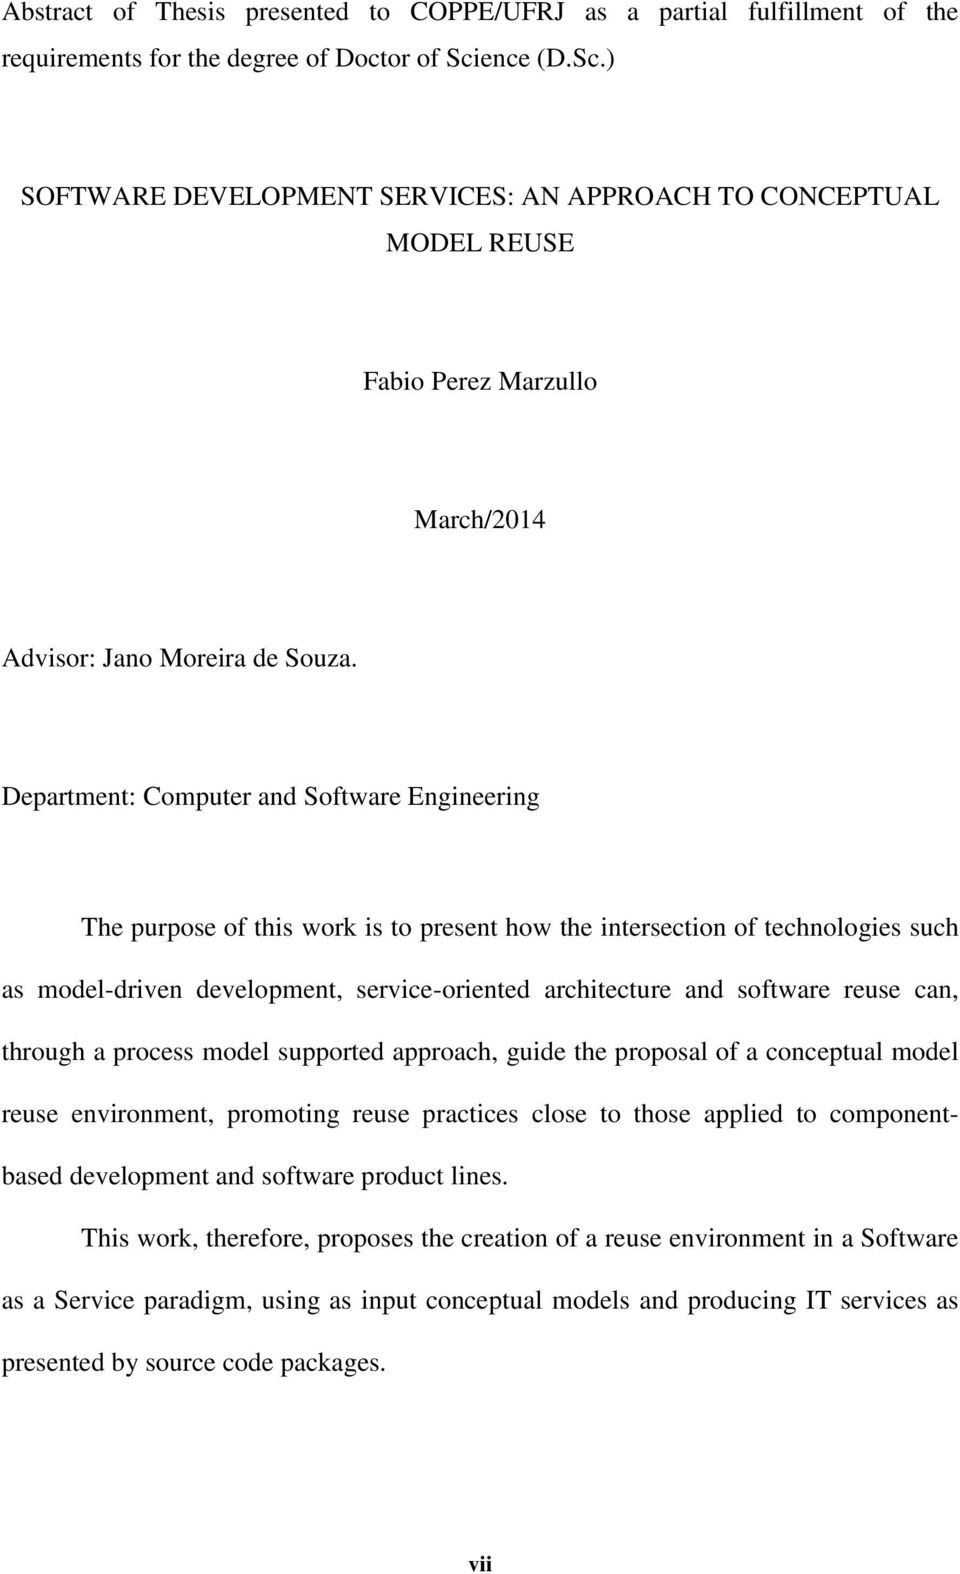 Department: Computer and Software Engineering The purpose of this work is to present how the intersection of technologies such as model-driven development, service-oriented architecture and software